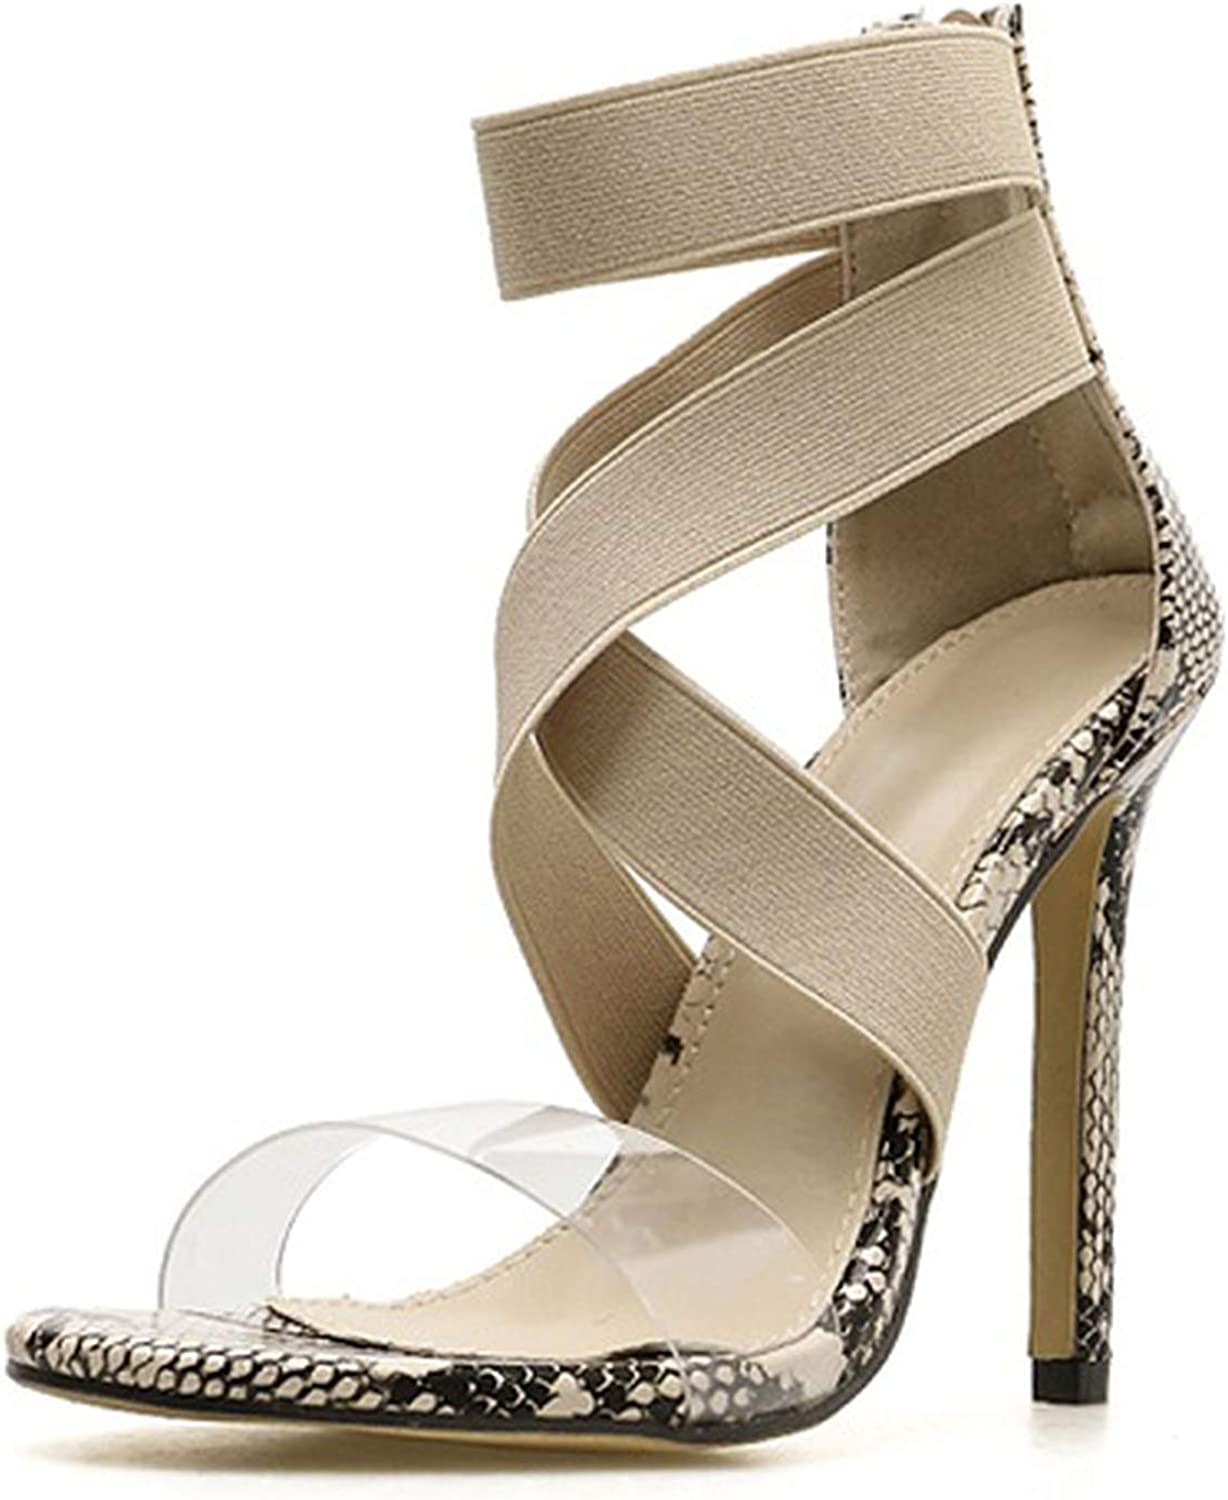 Ches Gladiator Sandals Women Club Party Sexy Stretch Fabric Zipper Sandals shoes Thin Heels Sandalias Feminina,Apricot,8